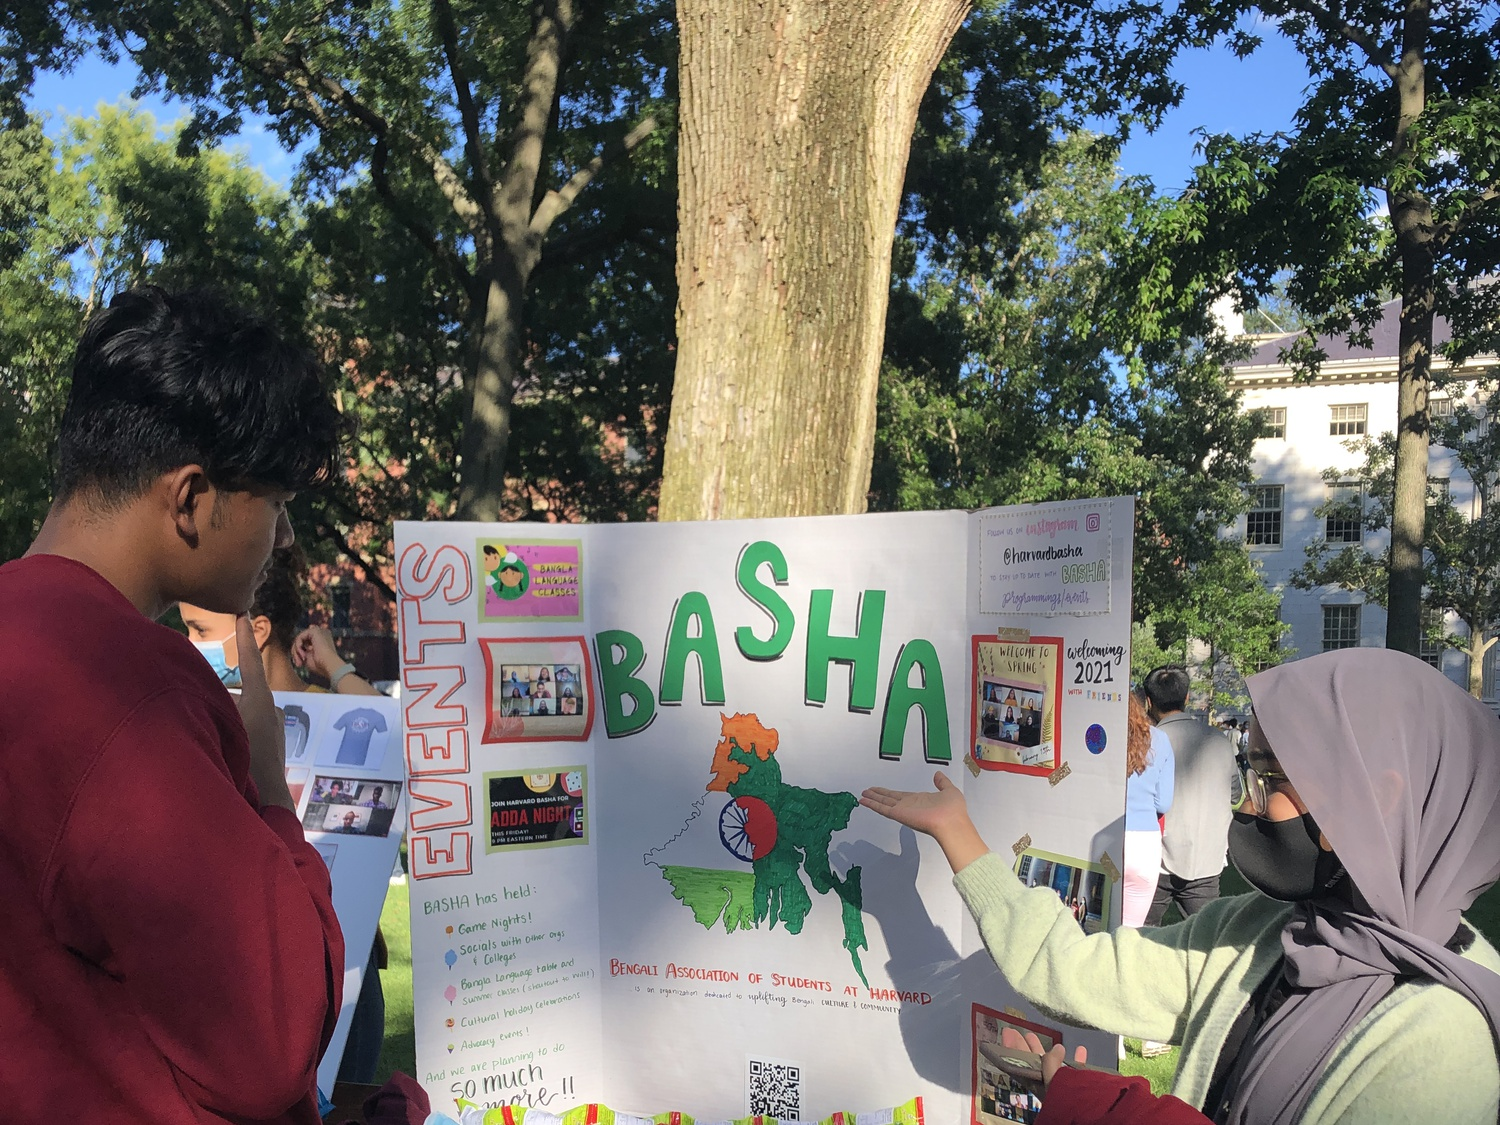 The Bengali Association of Students at Harvard launched during the pandemic to bring together Harvard students from Bangladesh and West Bengal.